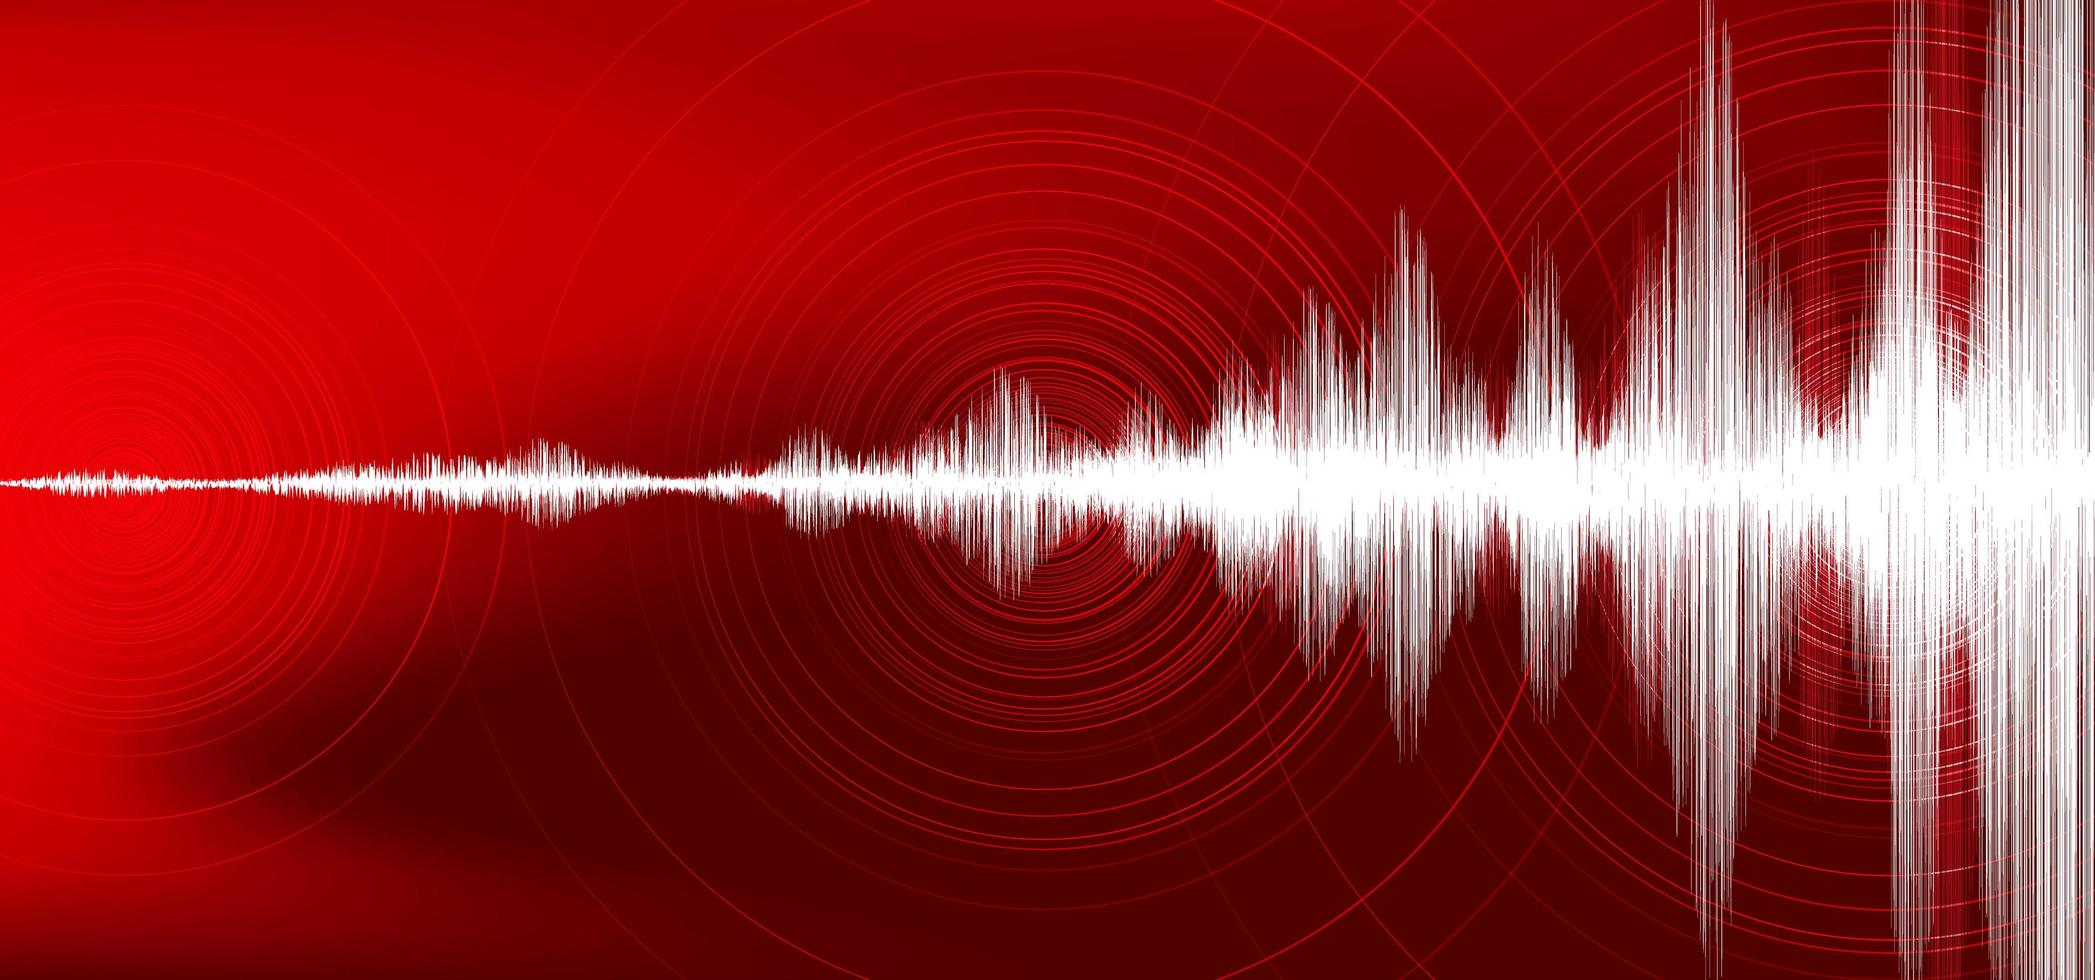 Digital Earthquake Wave with Circle Vibration on Dark Red background,audio wave diagram concept,design for education and science,Vector Illustration. vector